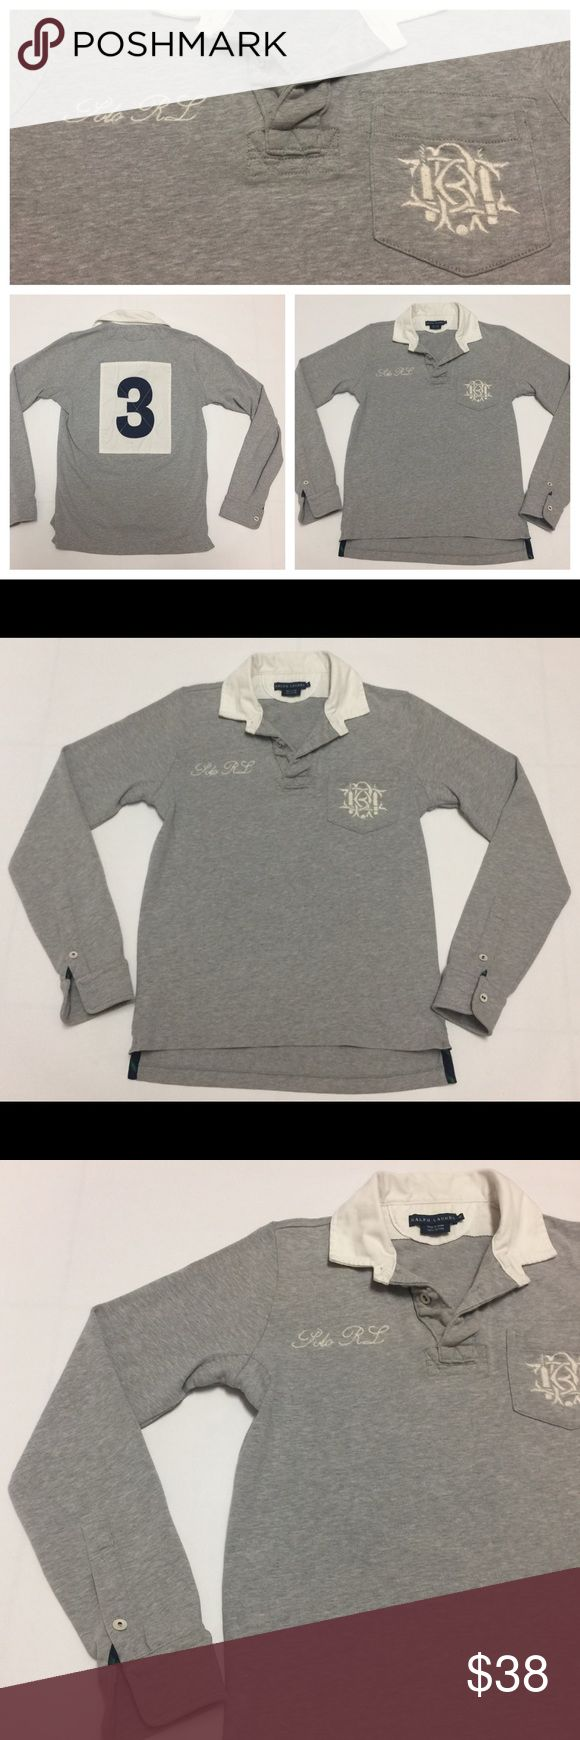 Polo Ralph Lauren Rugby Shirt Women's M Excellent Condition. No stains, no holes, no rips. Gently used. Expensive shirt new. Huge #3 Patch Sewn on the back. Polo RL and scribble logo embroidered on the front side. Women's Medium. Shipping Priority Mail same day or next day! Polo by Ralph Lauren Tops Blouses